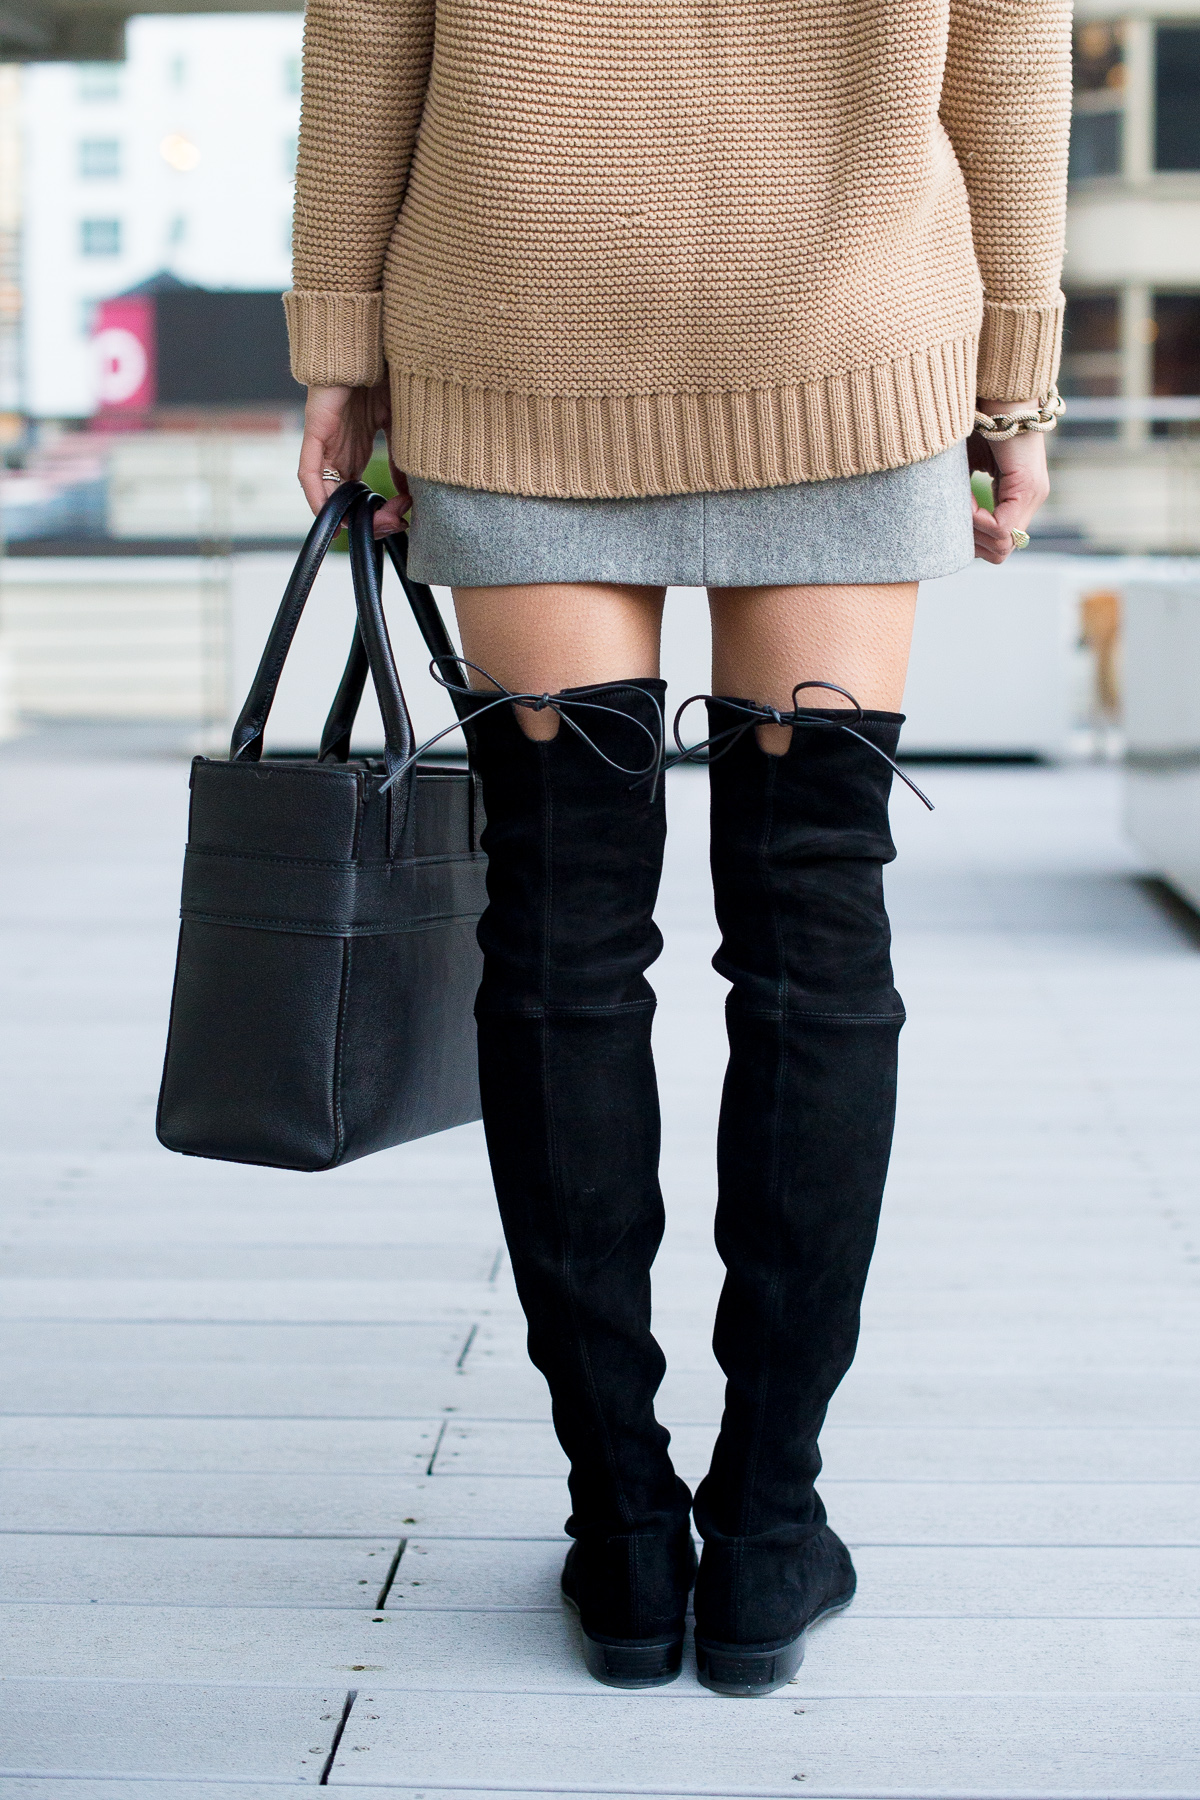 lowland boots, stuart weitzman boots, over the knee  boots, winter outfit, women's fashion, the fox and she